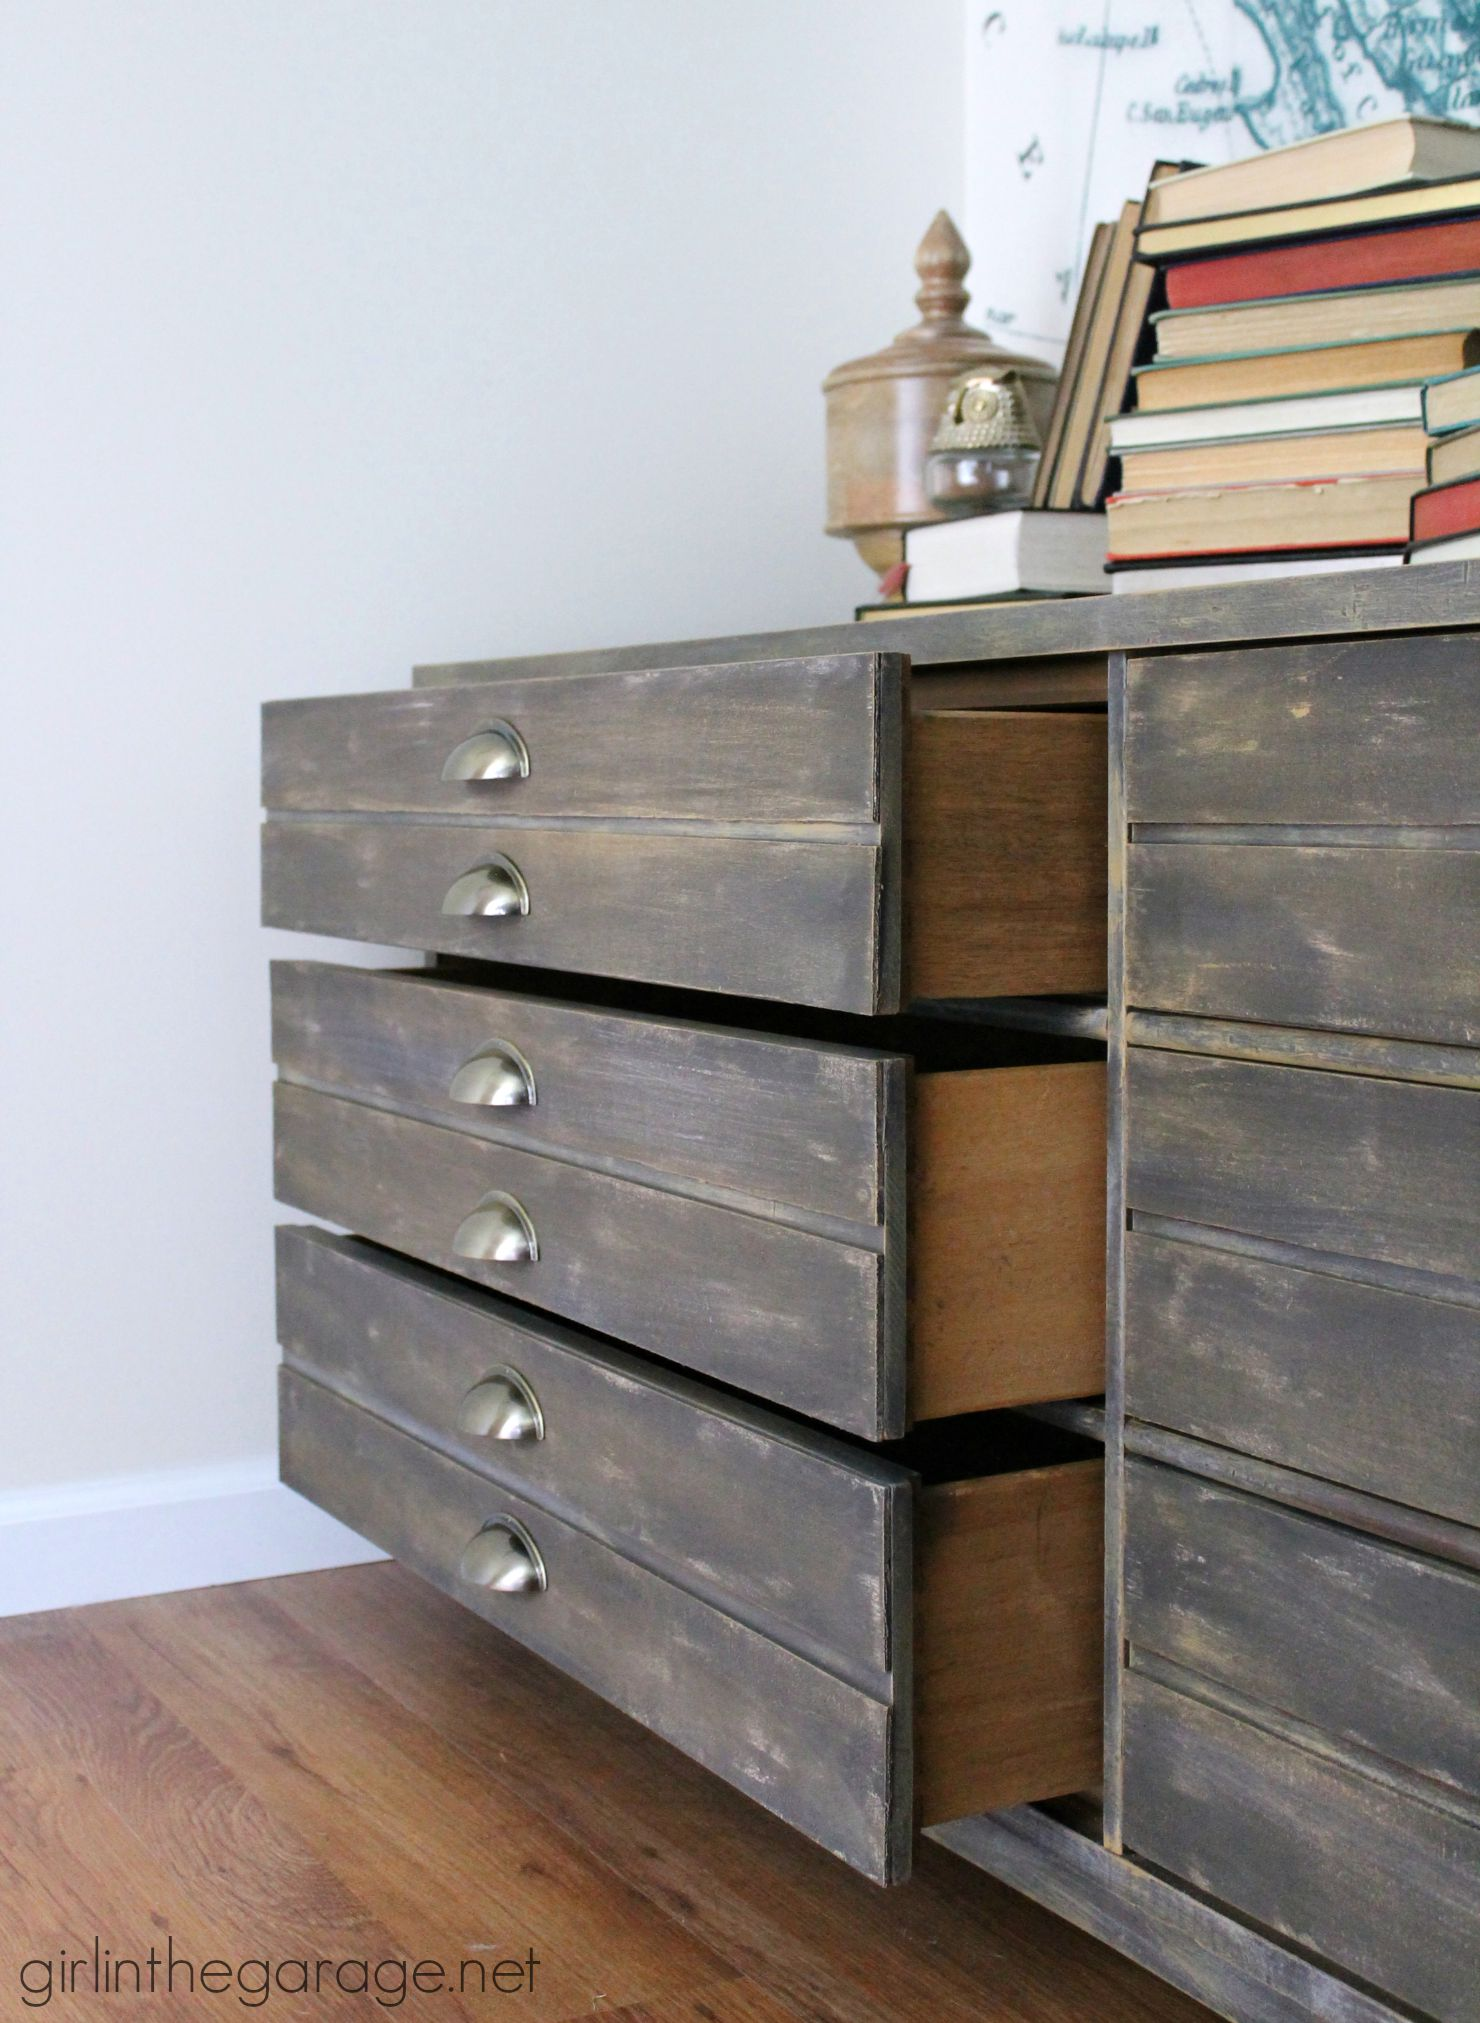 Anthropologie Inspired Dresser Makeover - Girl in the Garage